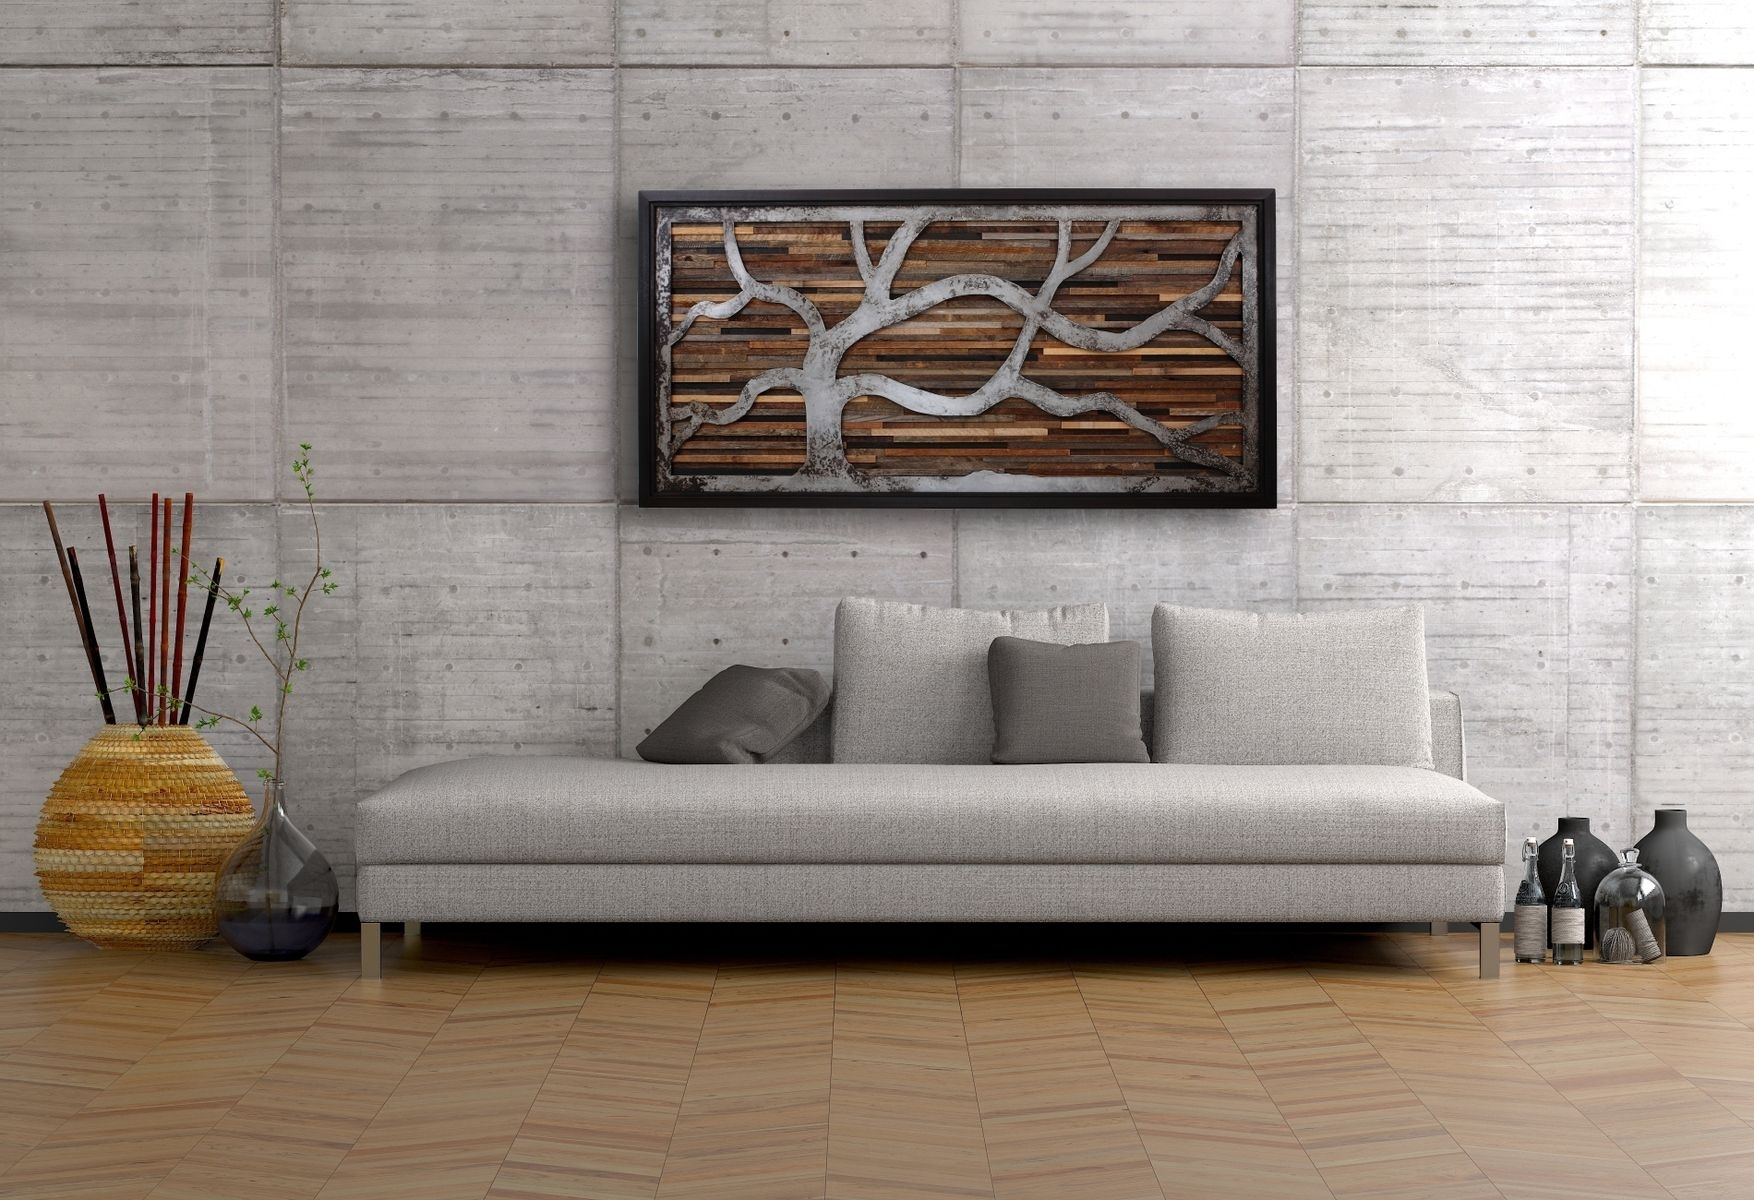 Handmade Reclaimed Wood Wall Art Made Of Old Barnwood And Rustic With 2018 Wood Art Wall (Gallery 10 of 15)